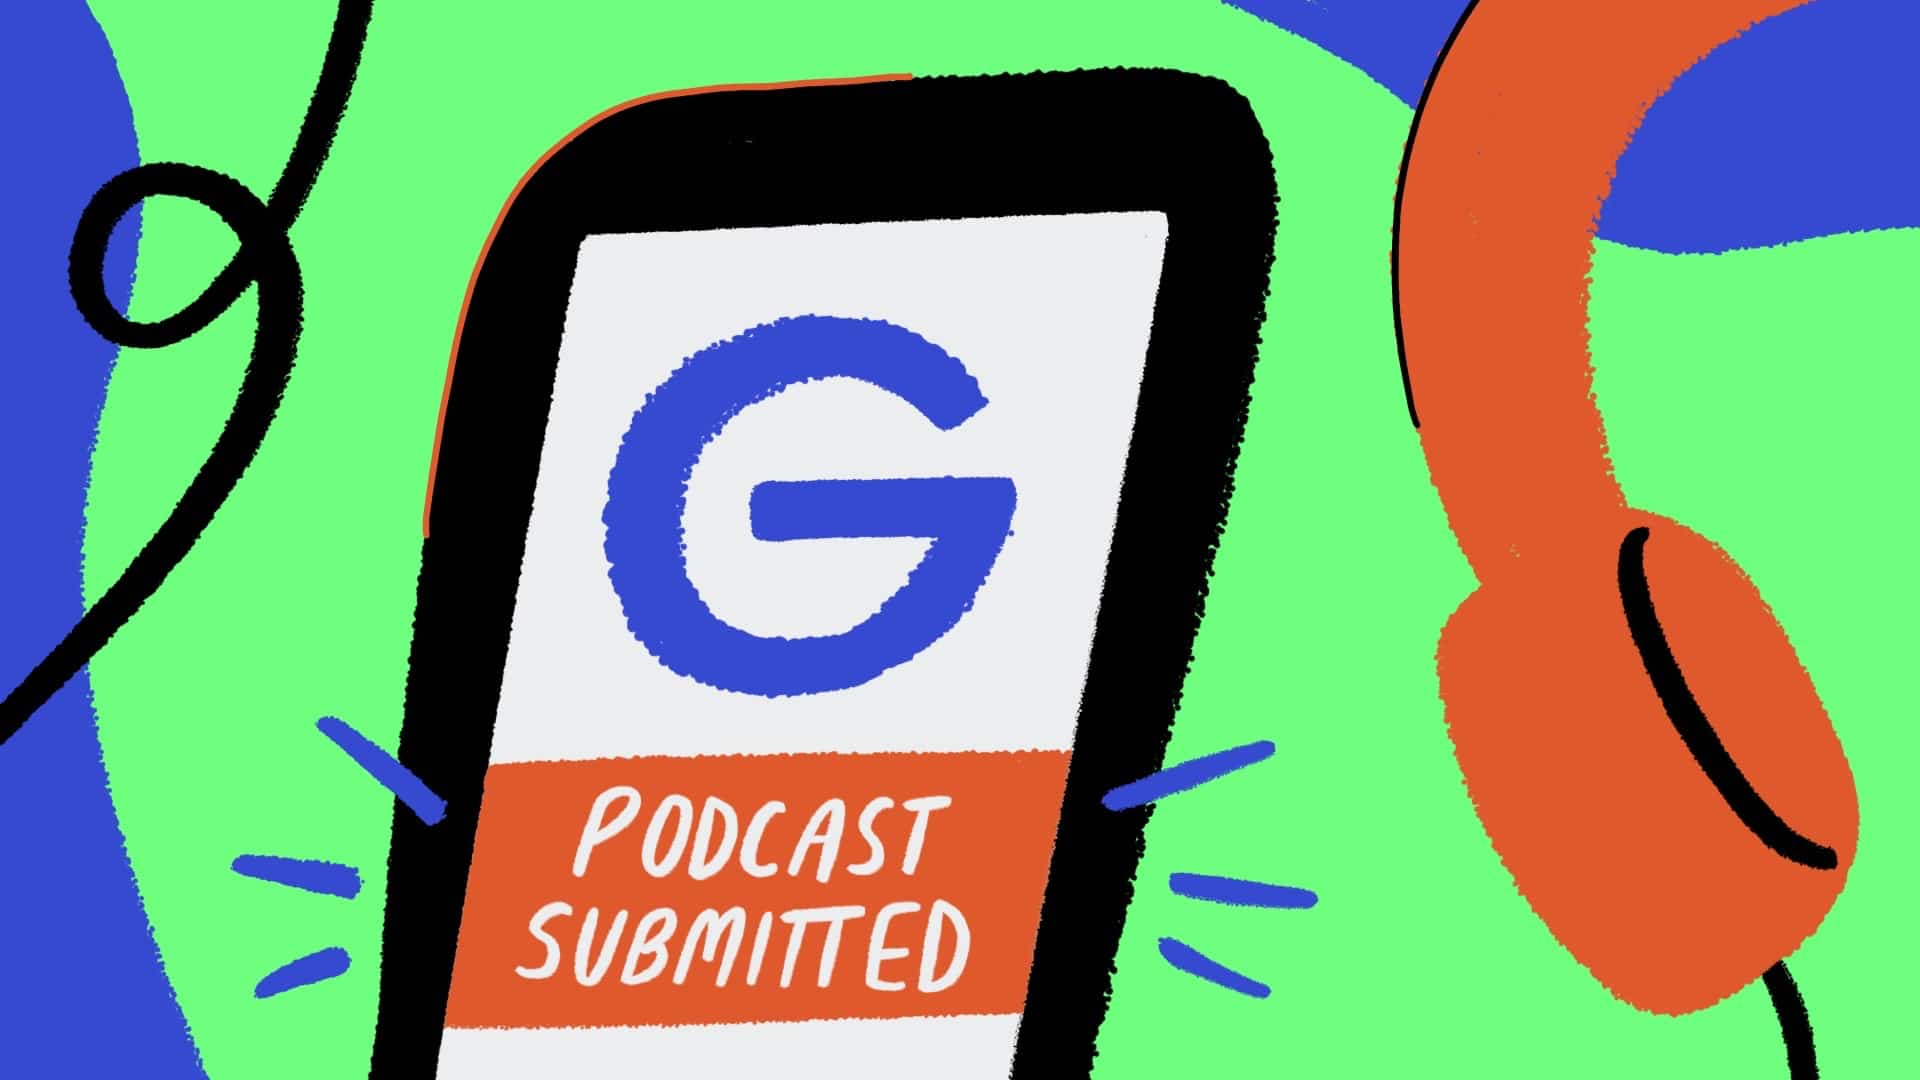 How To Get Your Podcast On Google Podcasts